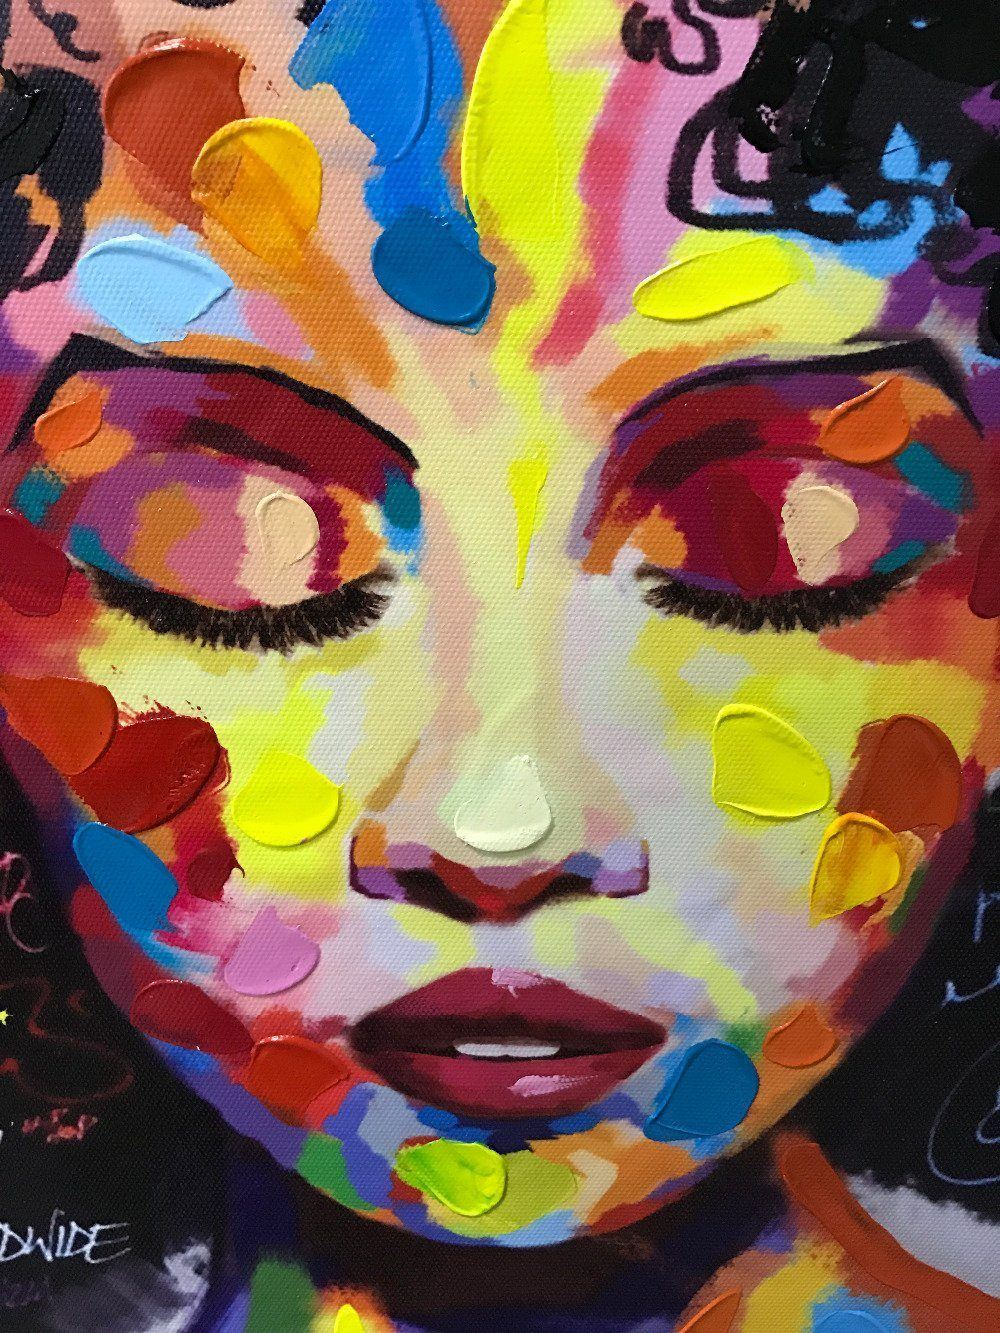 wall art afro woman painting eyes closed front view